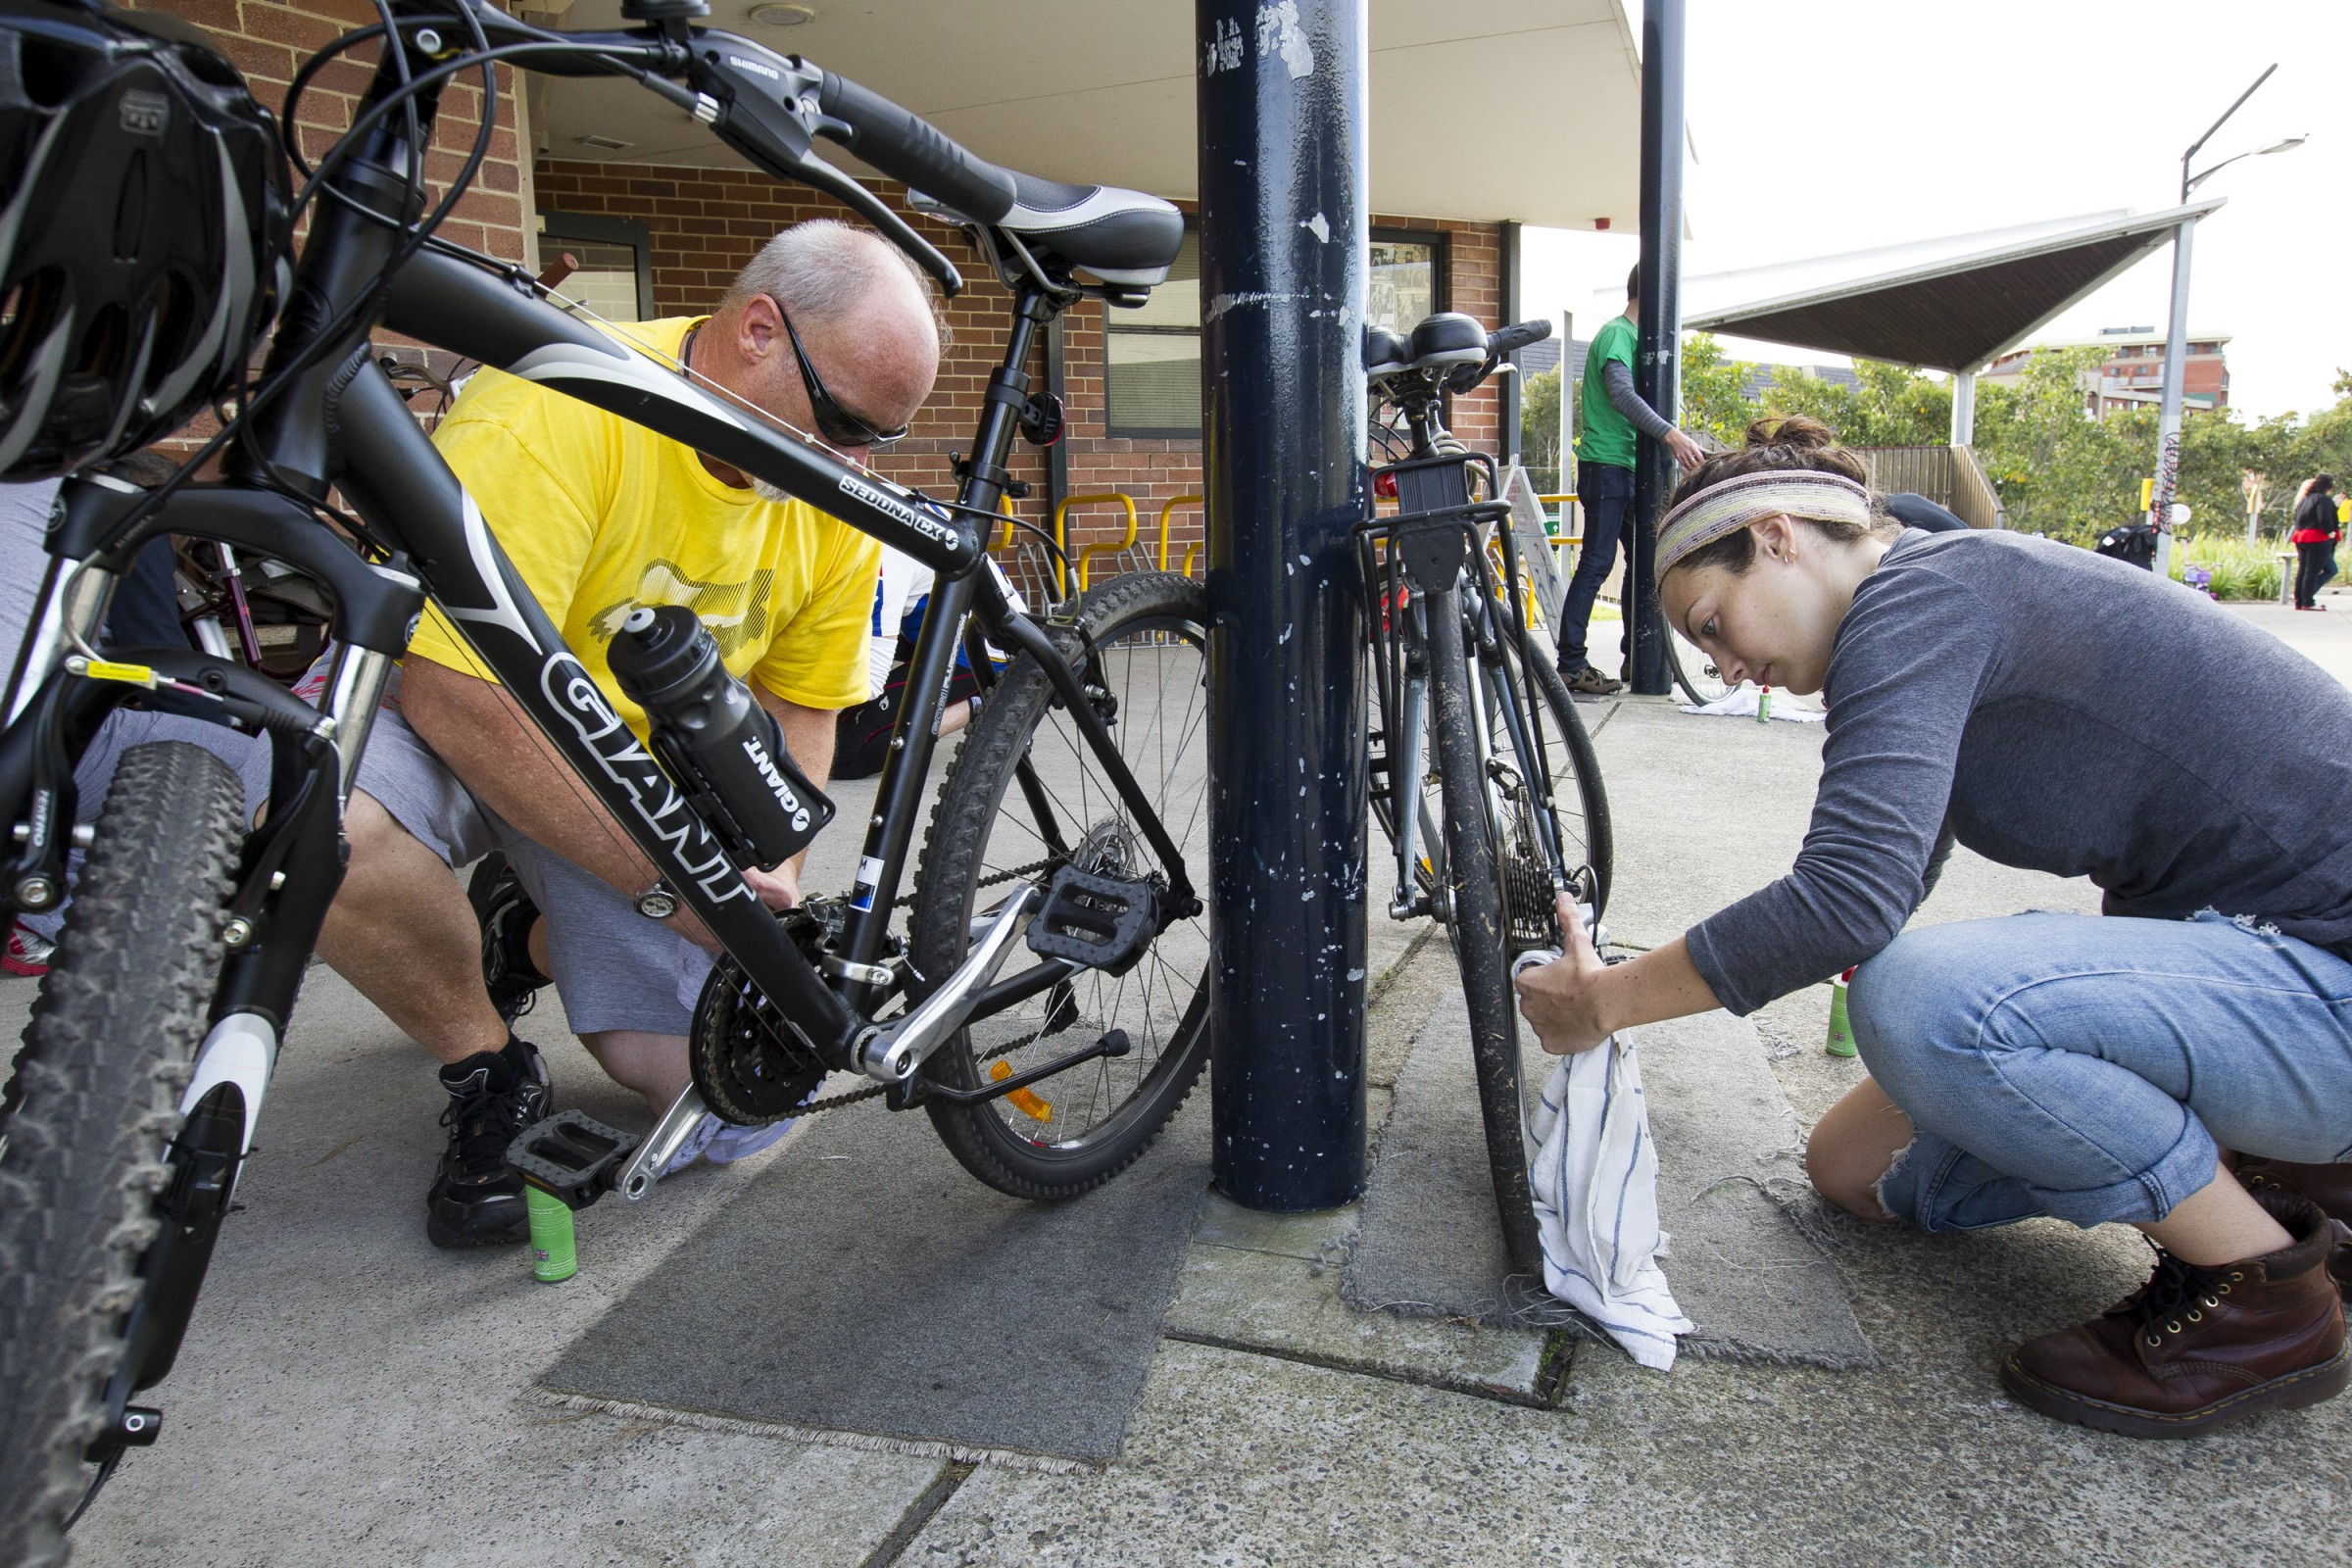 Intermediate Bike Care and Maintenance Course